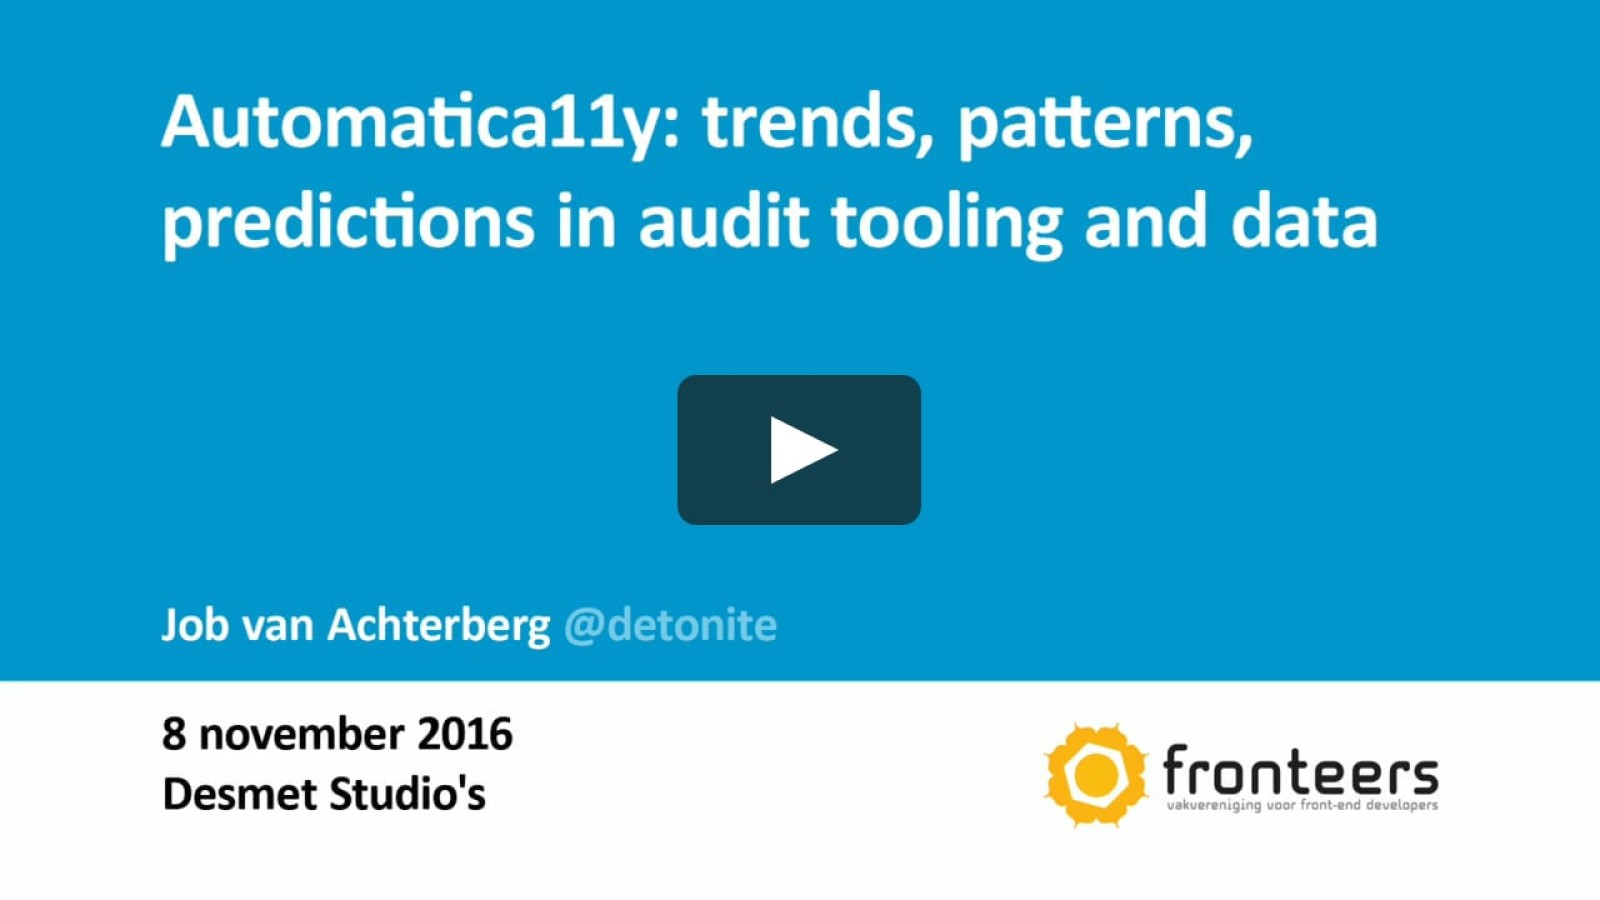 Automatica11y: trends, patterns, predictions in audit tooling and data